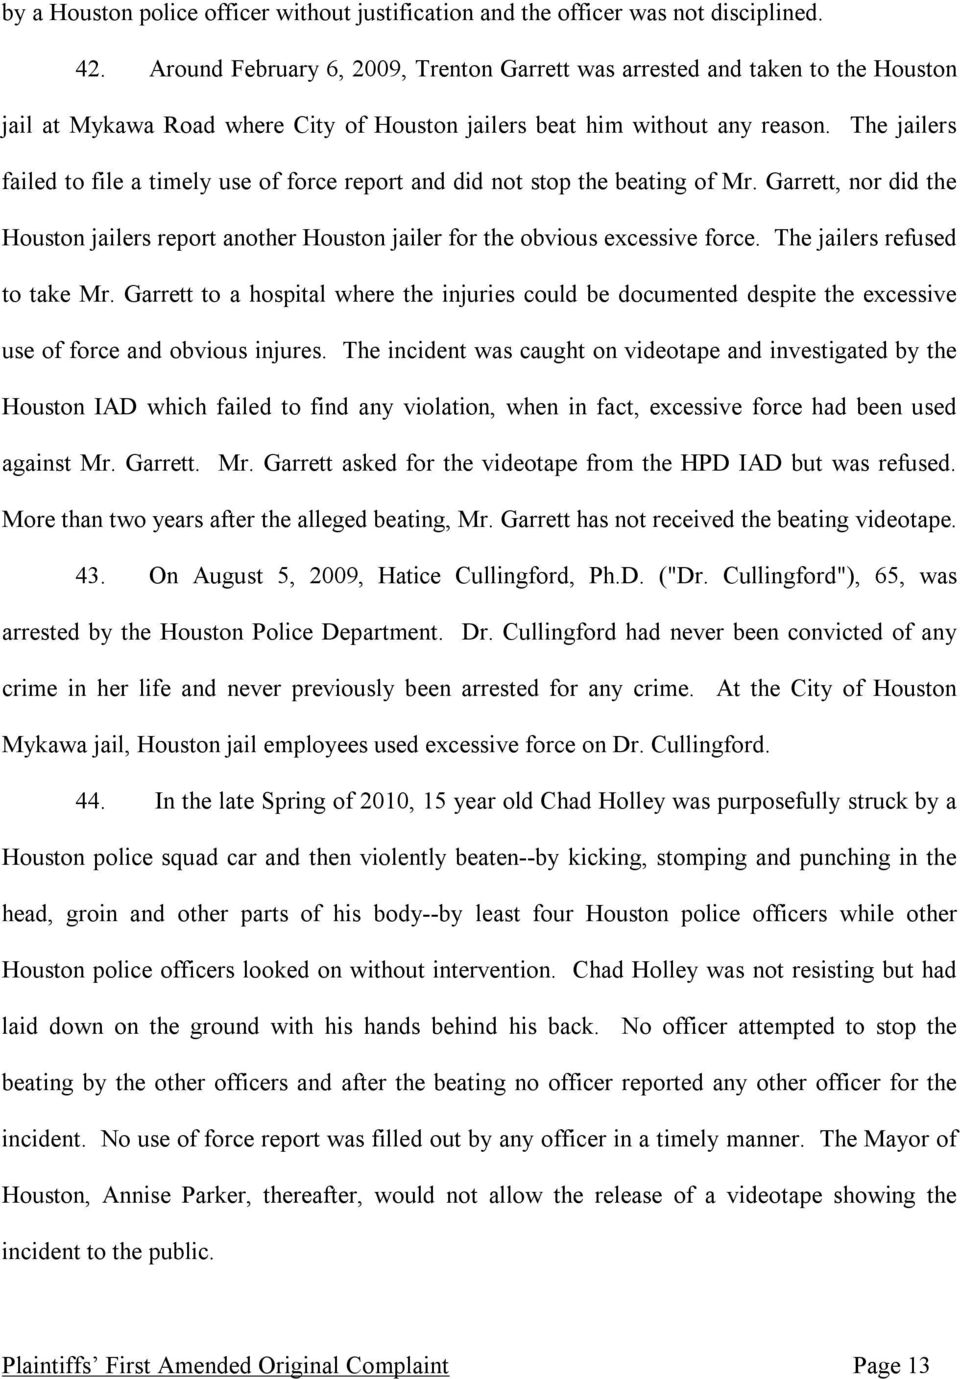 The jailers failed to file a timely use of force report and did not stop the beating of Mr. Garrett, nor did the Houston jailers report another Houston jailer for the obvious excessive force.